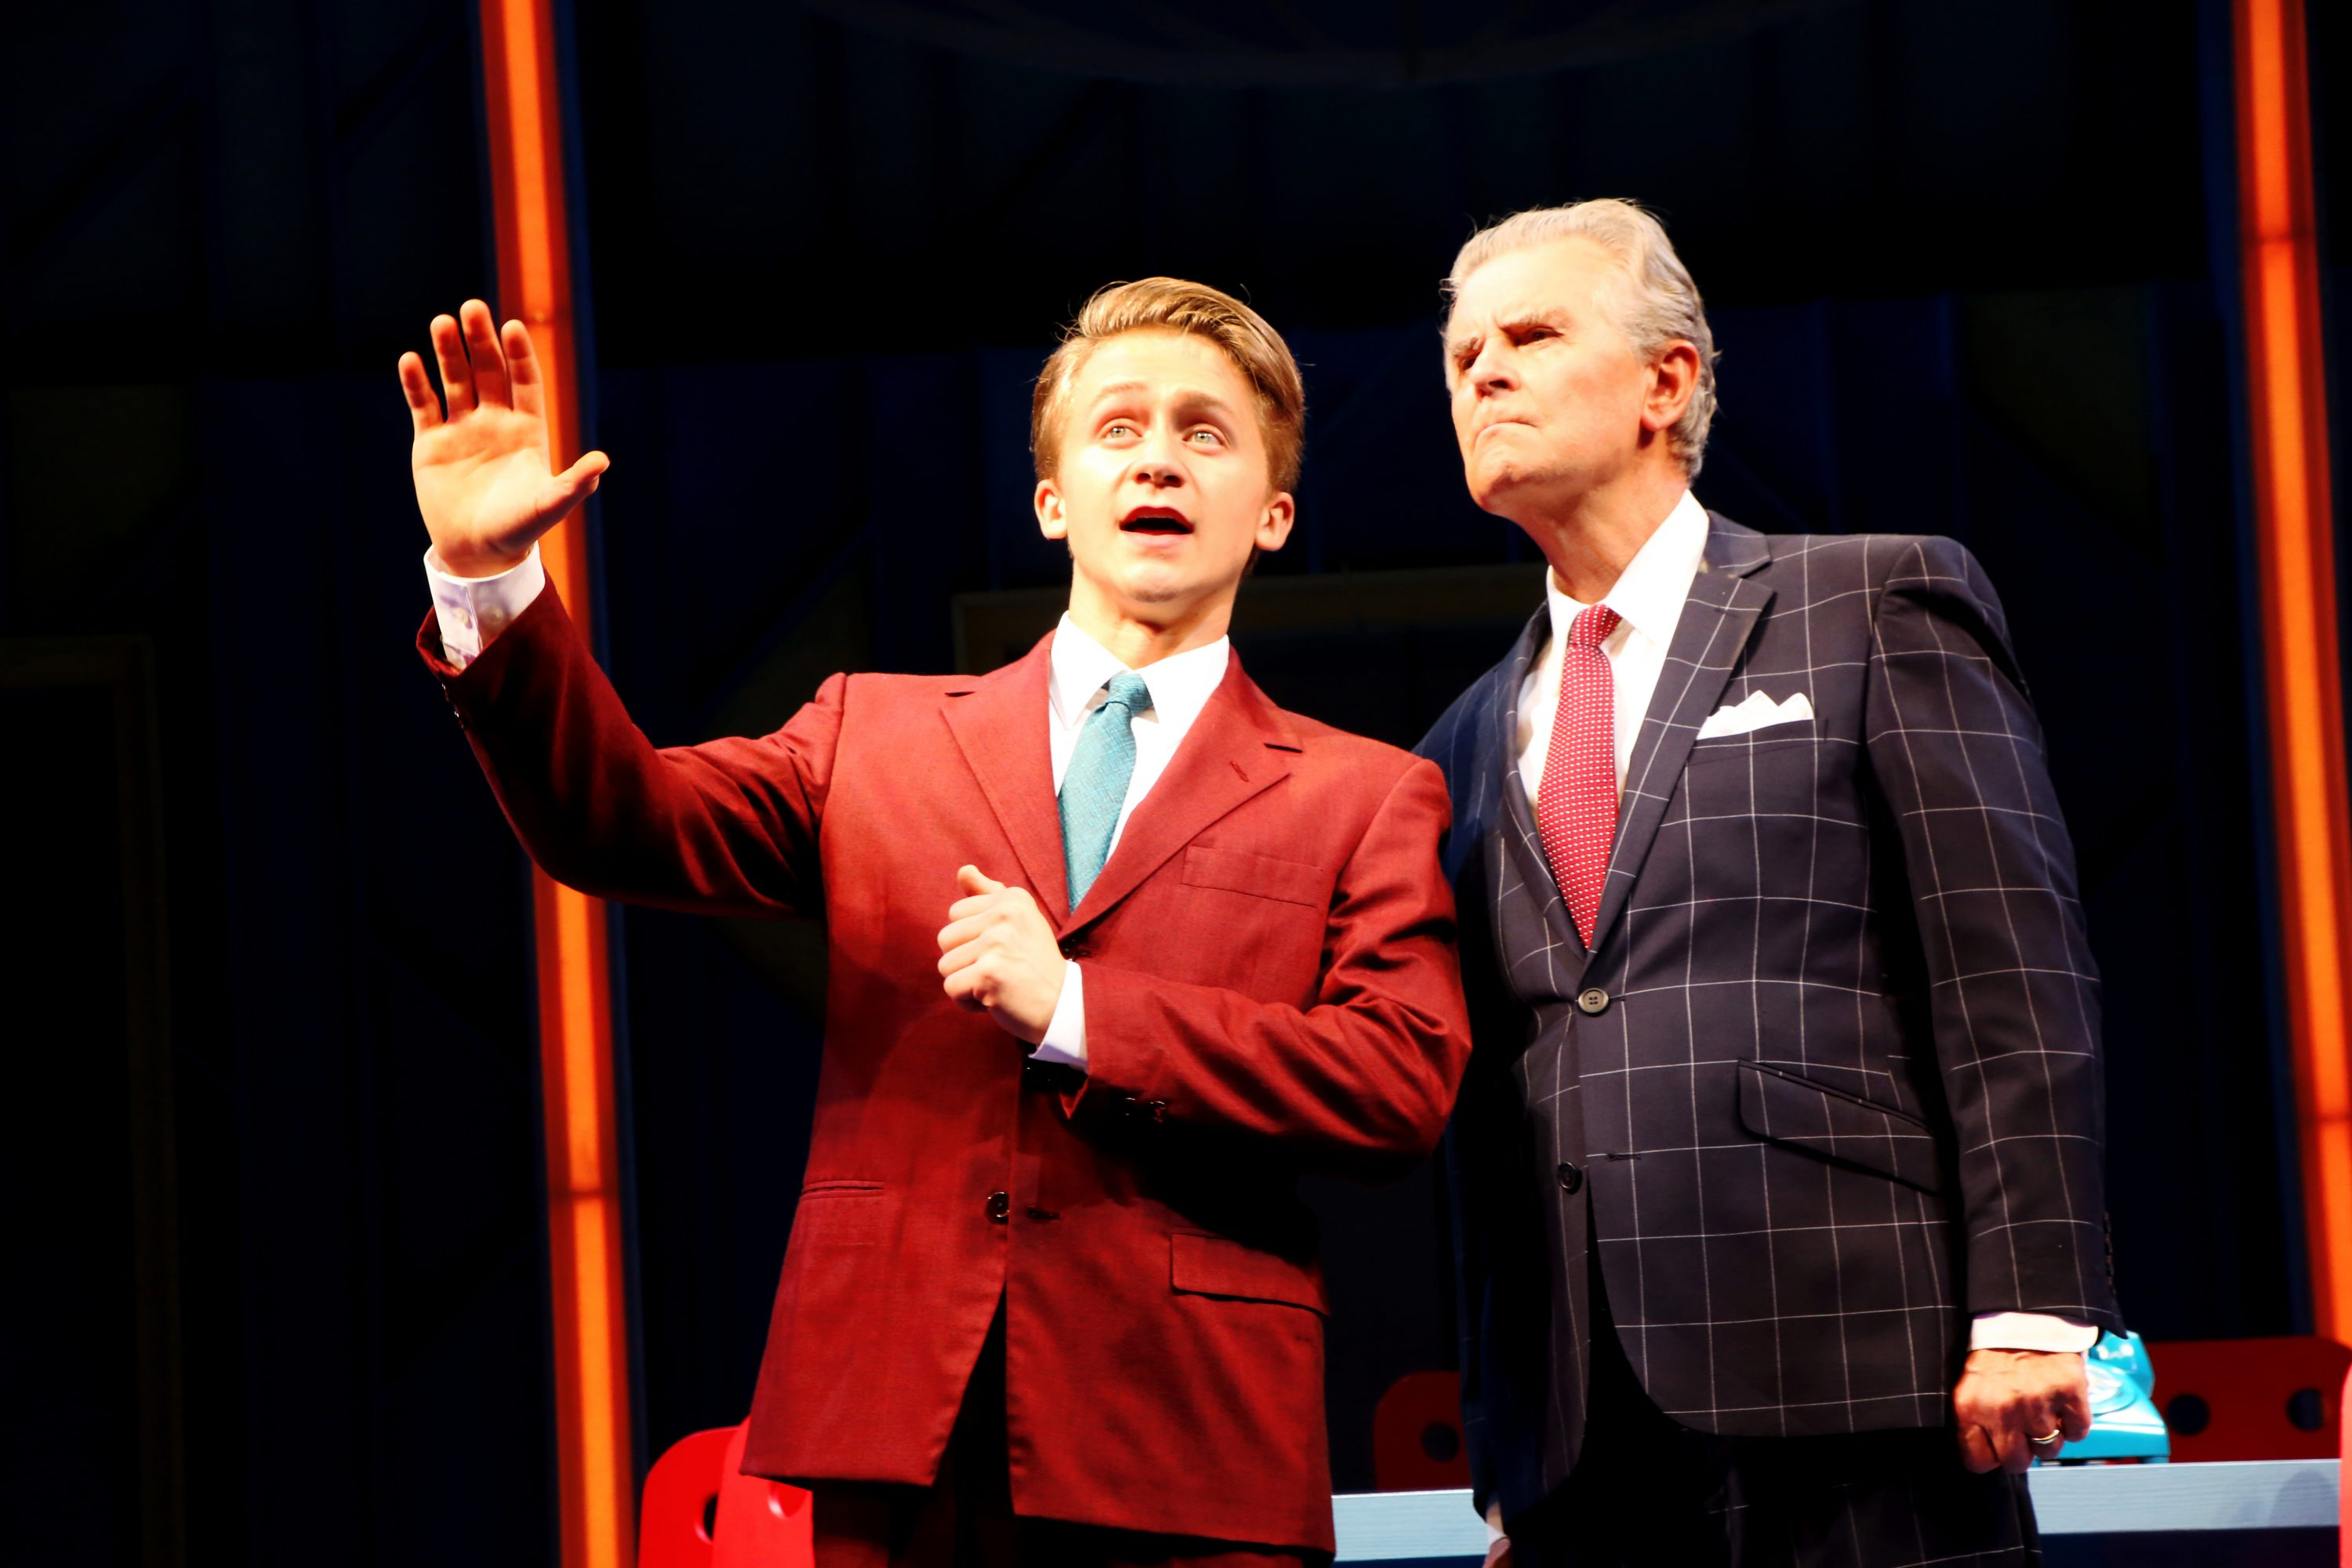 Riley Costello (Finch), left, and Fred Grandy (Biggley) in 'How to Succeed in Business Without Really Trying,' onstage June 2-12, 2016 at Connecticut Repertory Theatre's Harriet S. Jorgensen Theatre. (Gerry Goodstein for UConn)